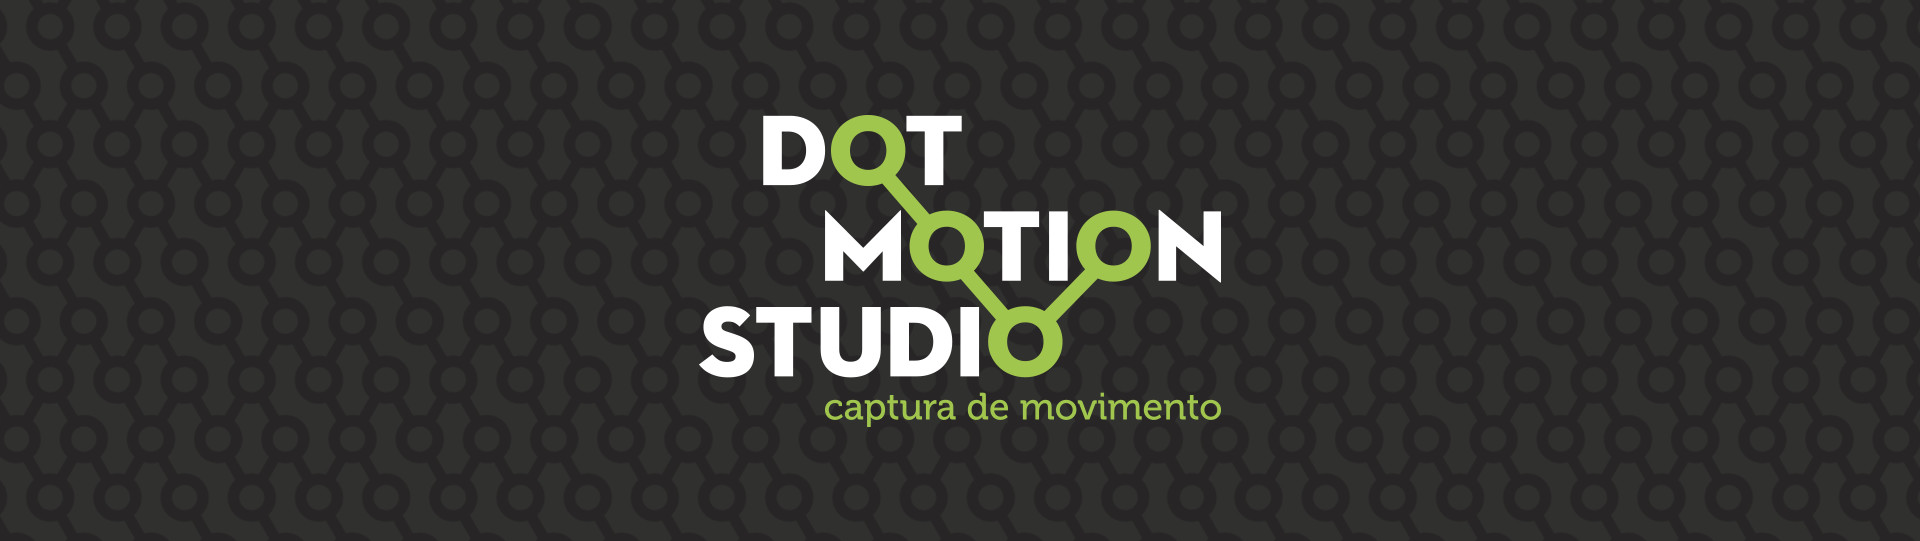 logotipo DotMotionStudio